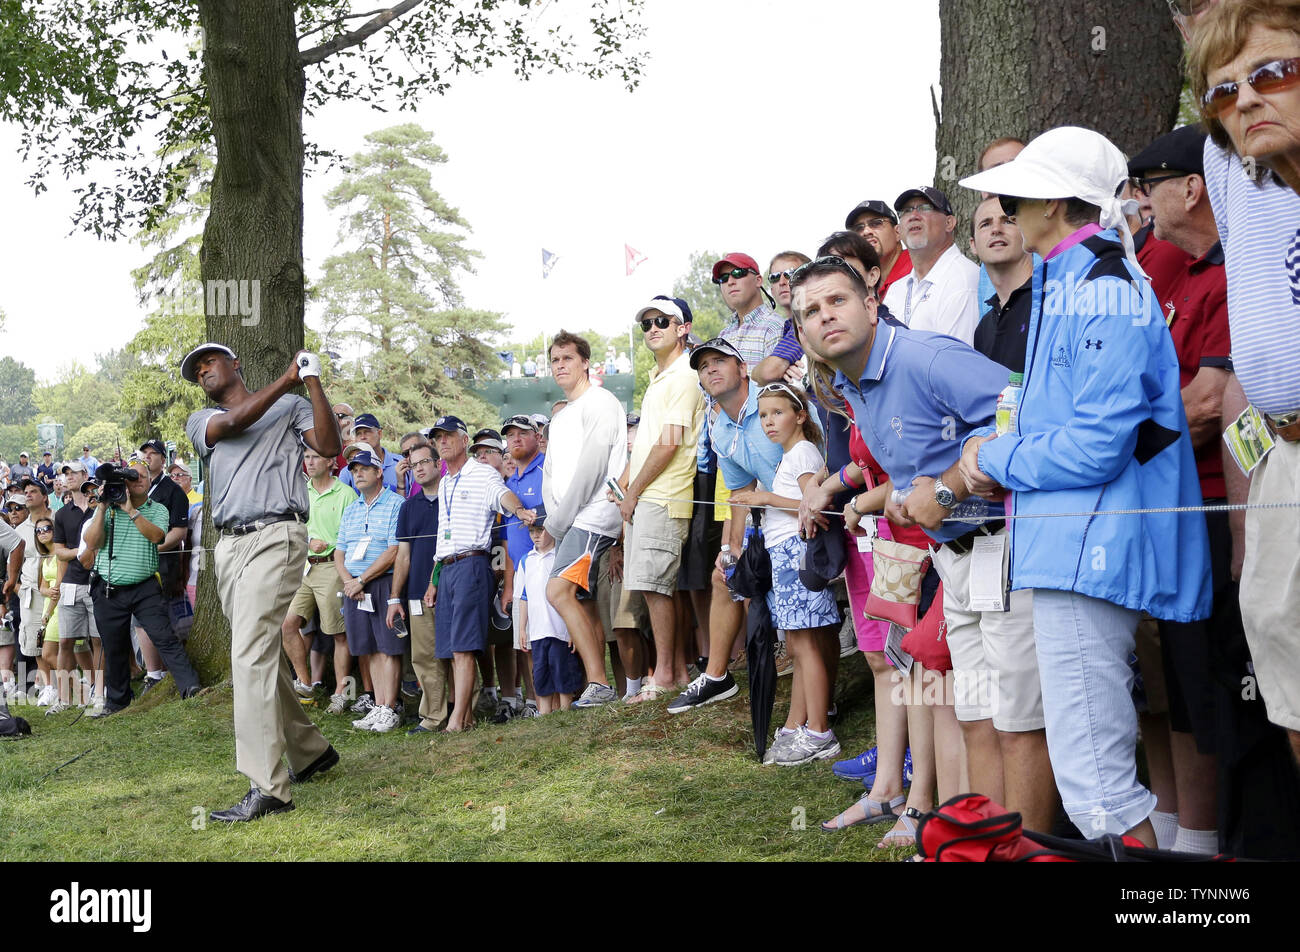 Fans watch Vijay Singh hit out of the rough on the 9th hole in the